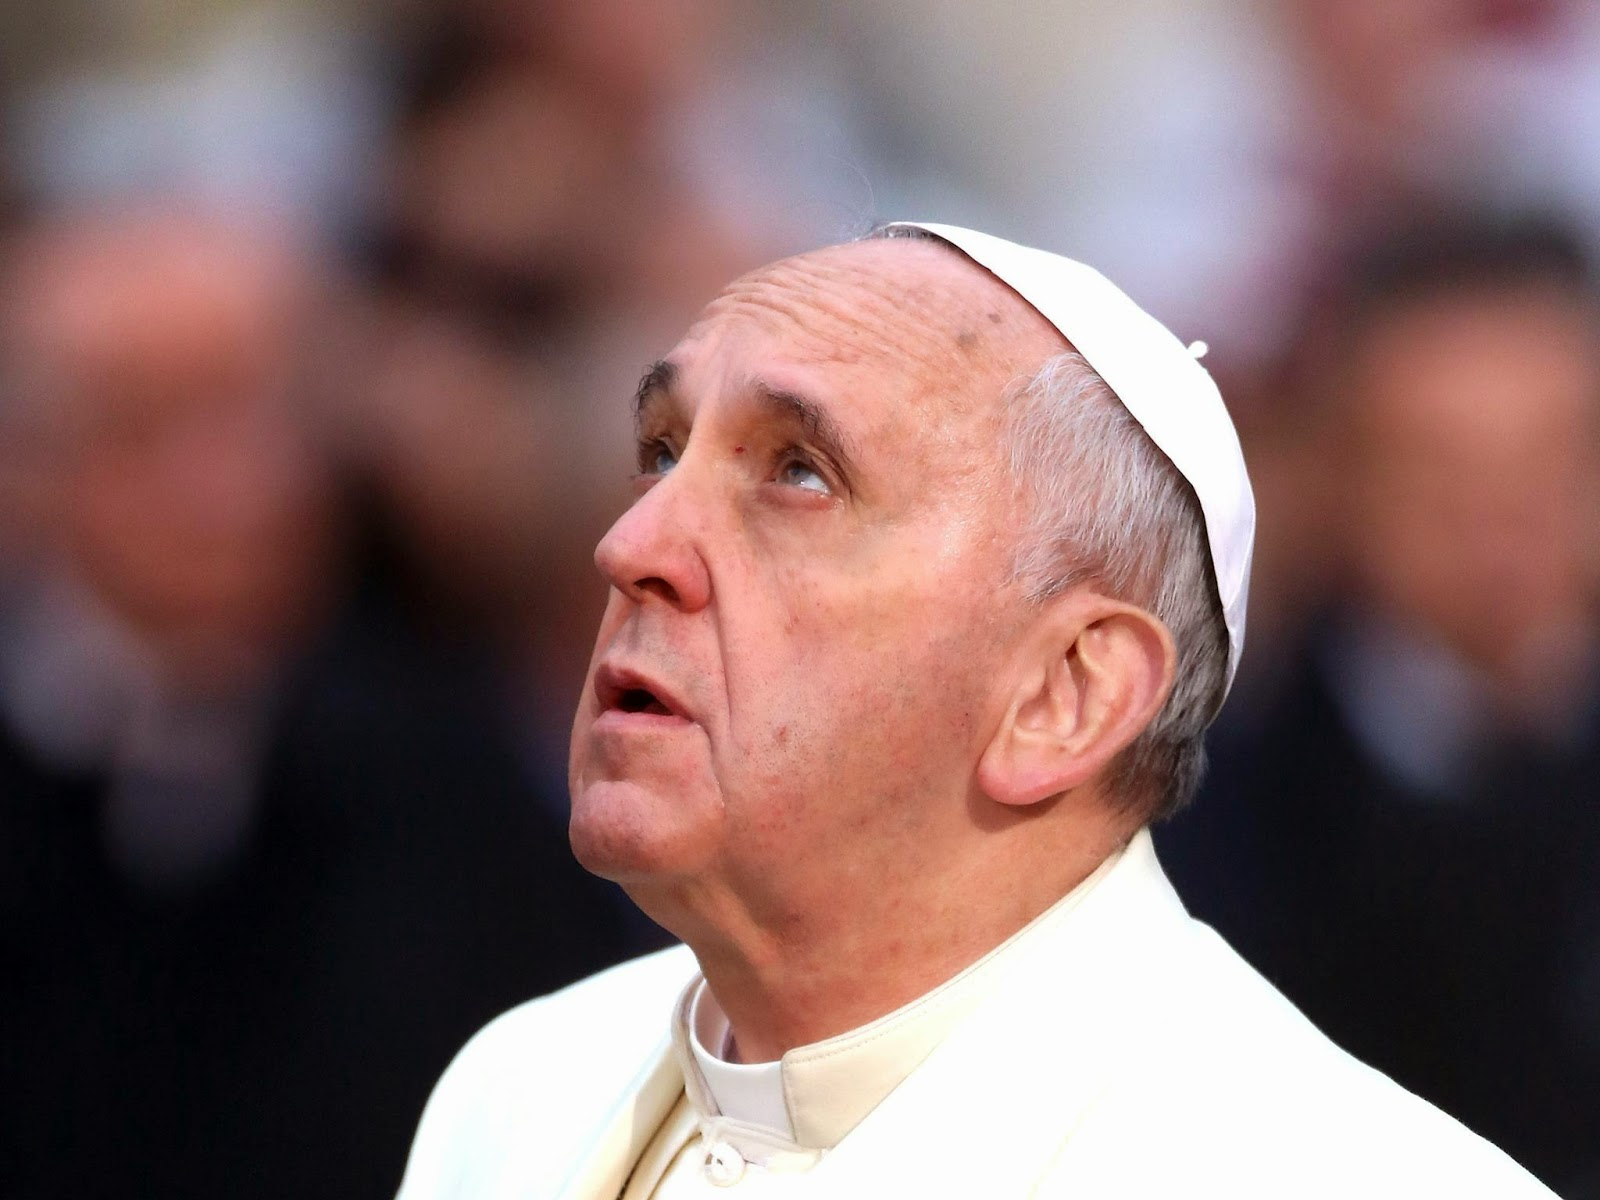 3 papal visit days declared special non-working days